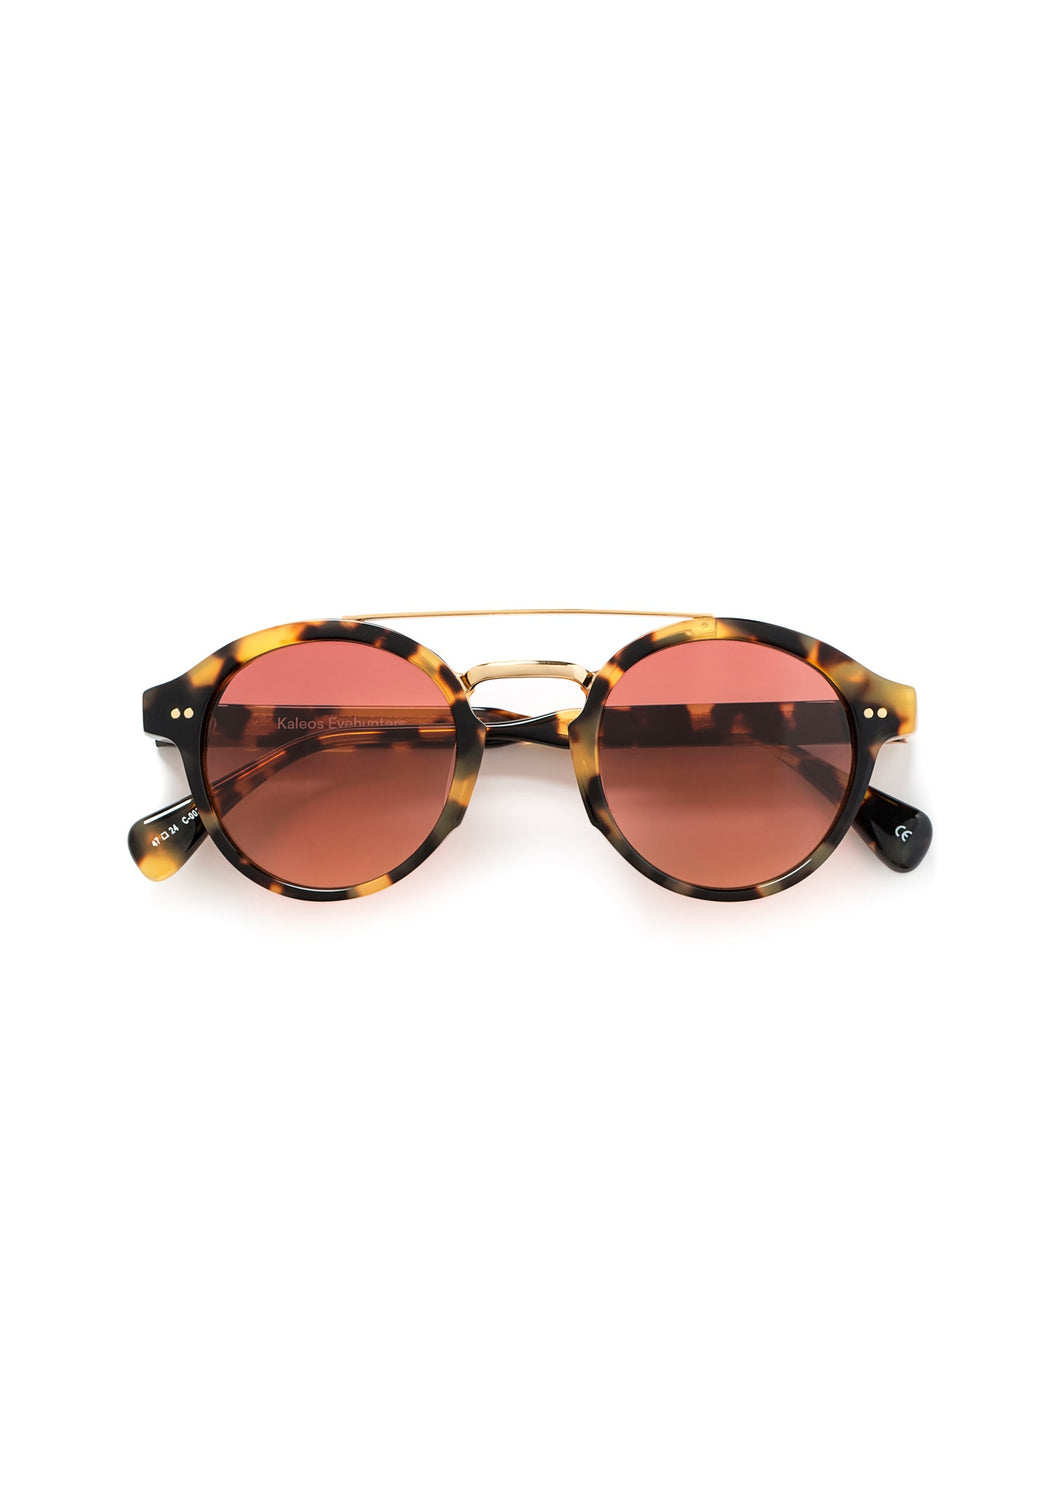 Kaleos Sunglasses Gage 3